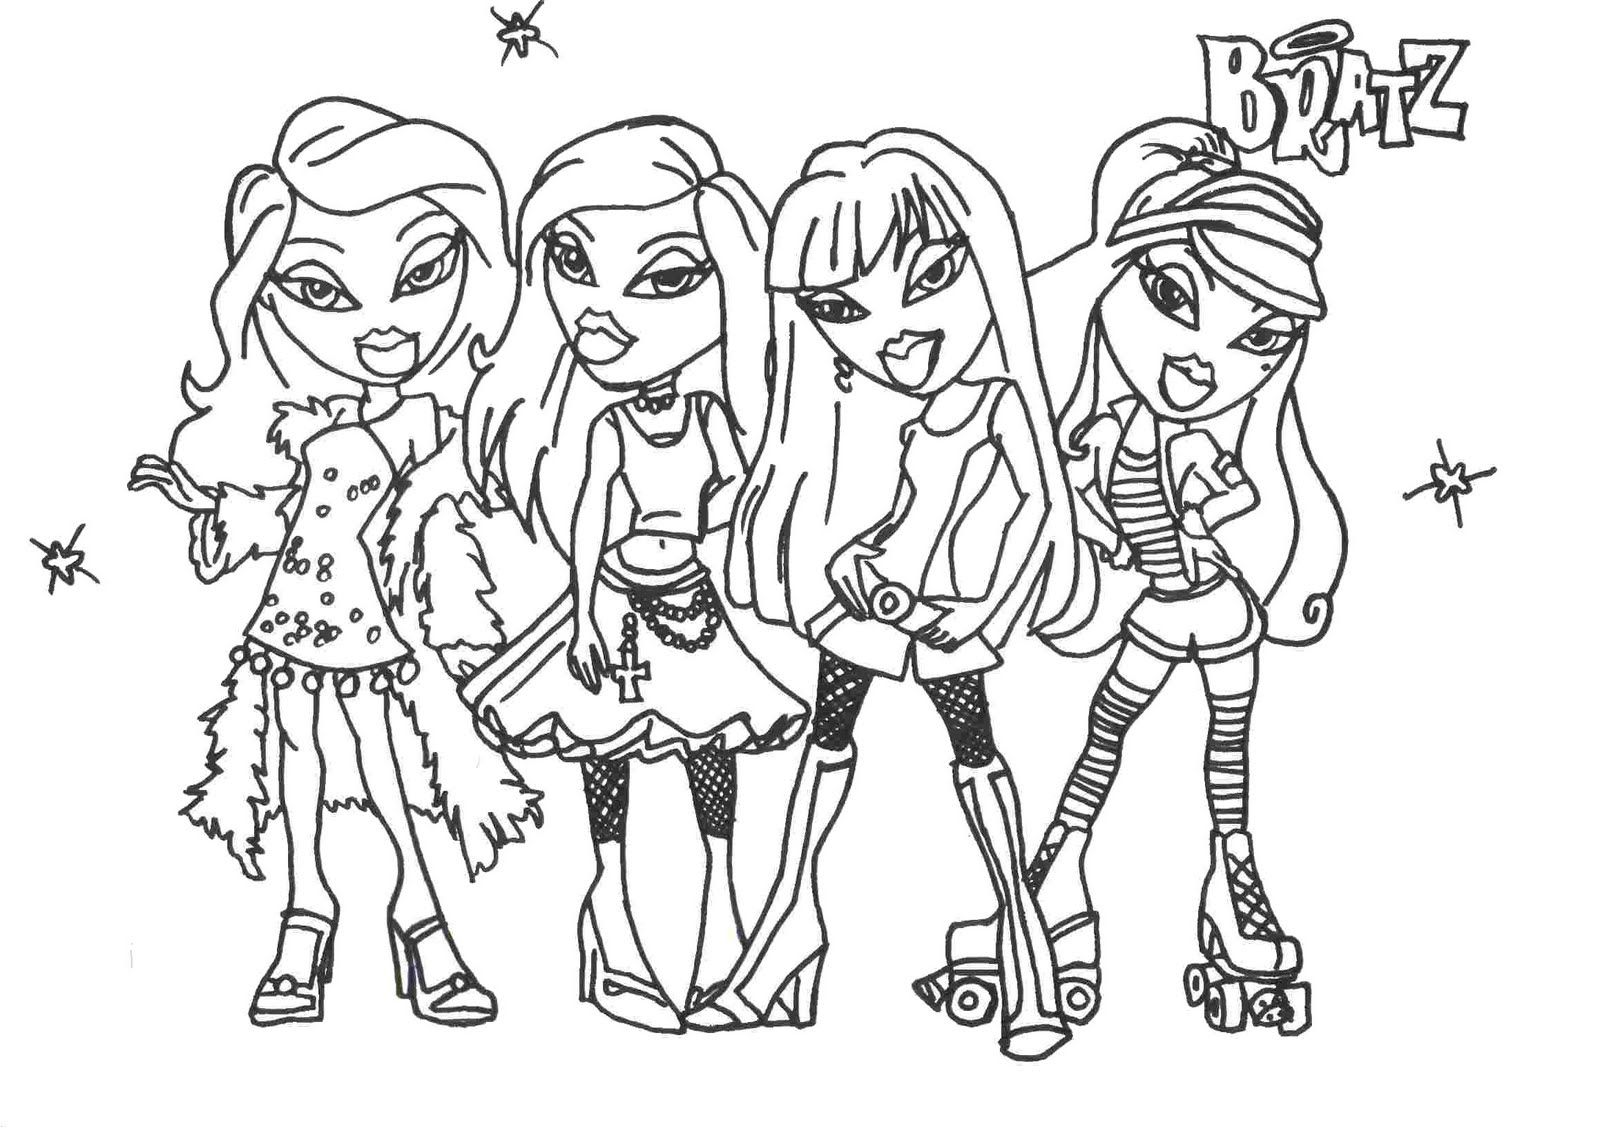 Princess coloring book pages - Bratz Glamor Girls Coloring Pages Disney Princess Coloring Pages